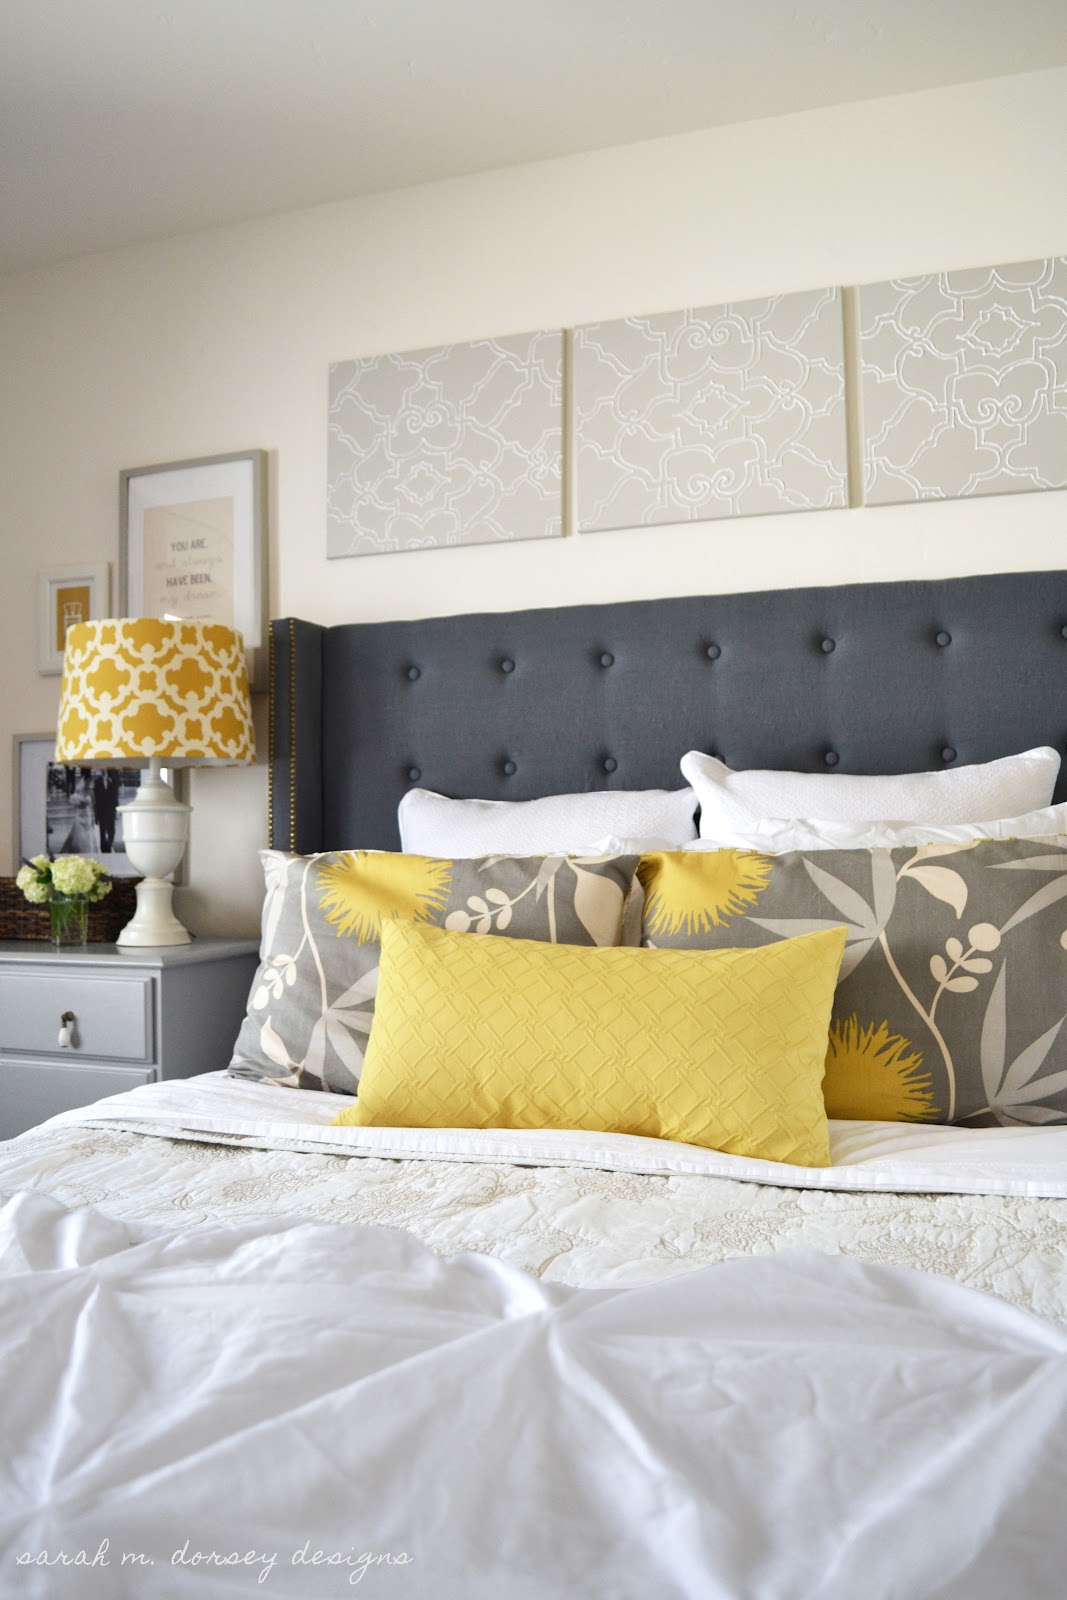 danielle oakey interiors: DIY Tufted Headboard with Wings and ...